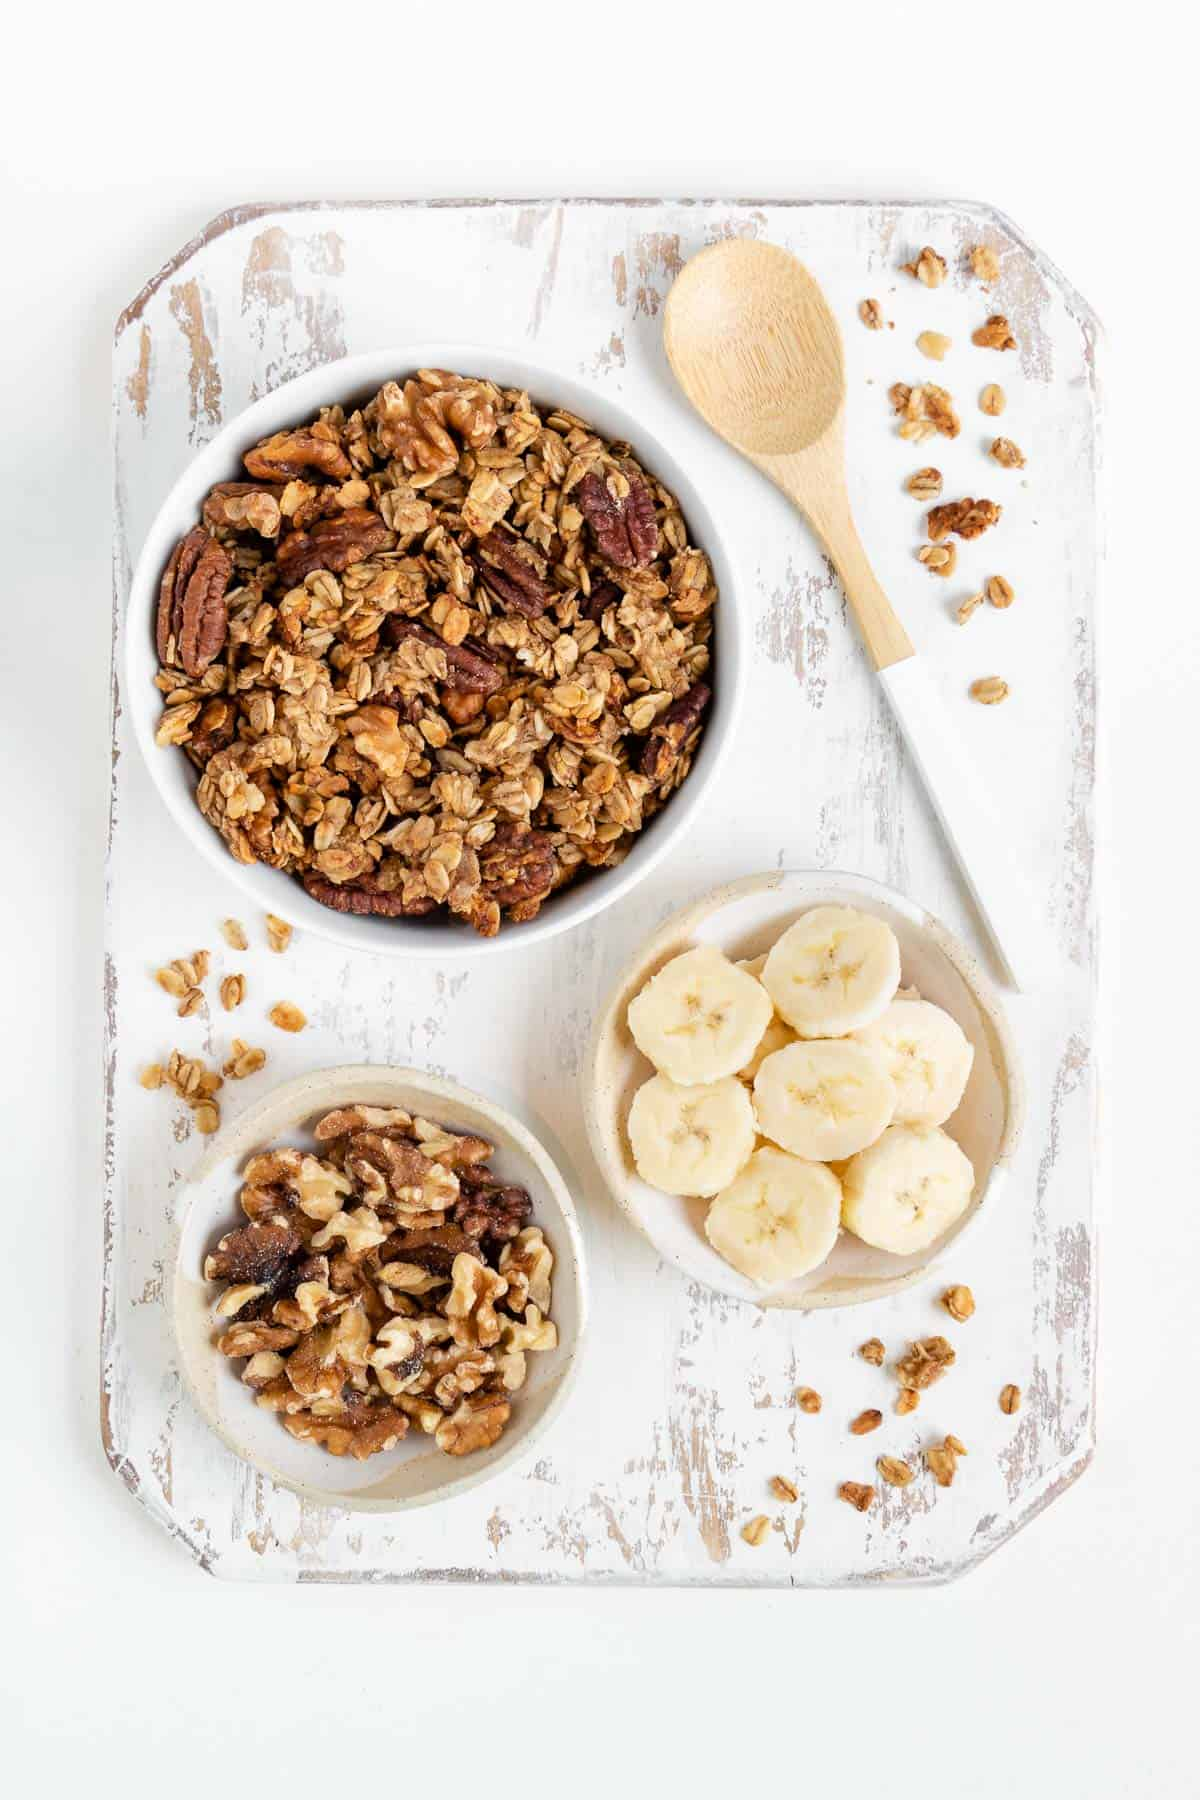 a bowl of banana bread granola, a bowl of sliced bananas, and a bowl of walnuts on a distressed wood cutting board